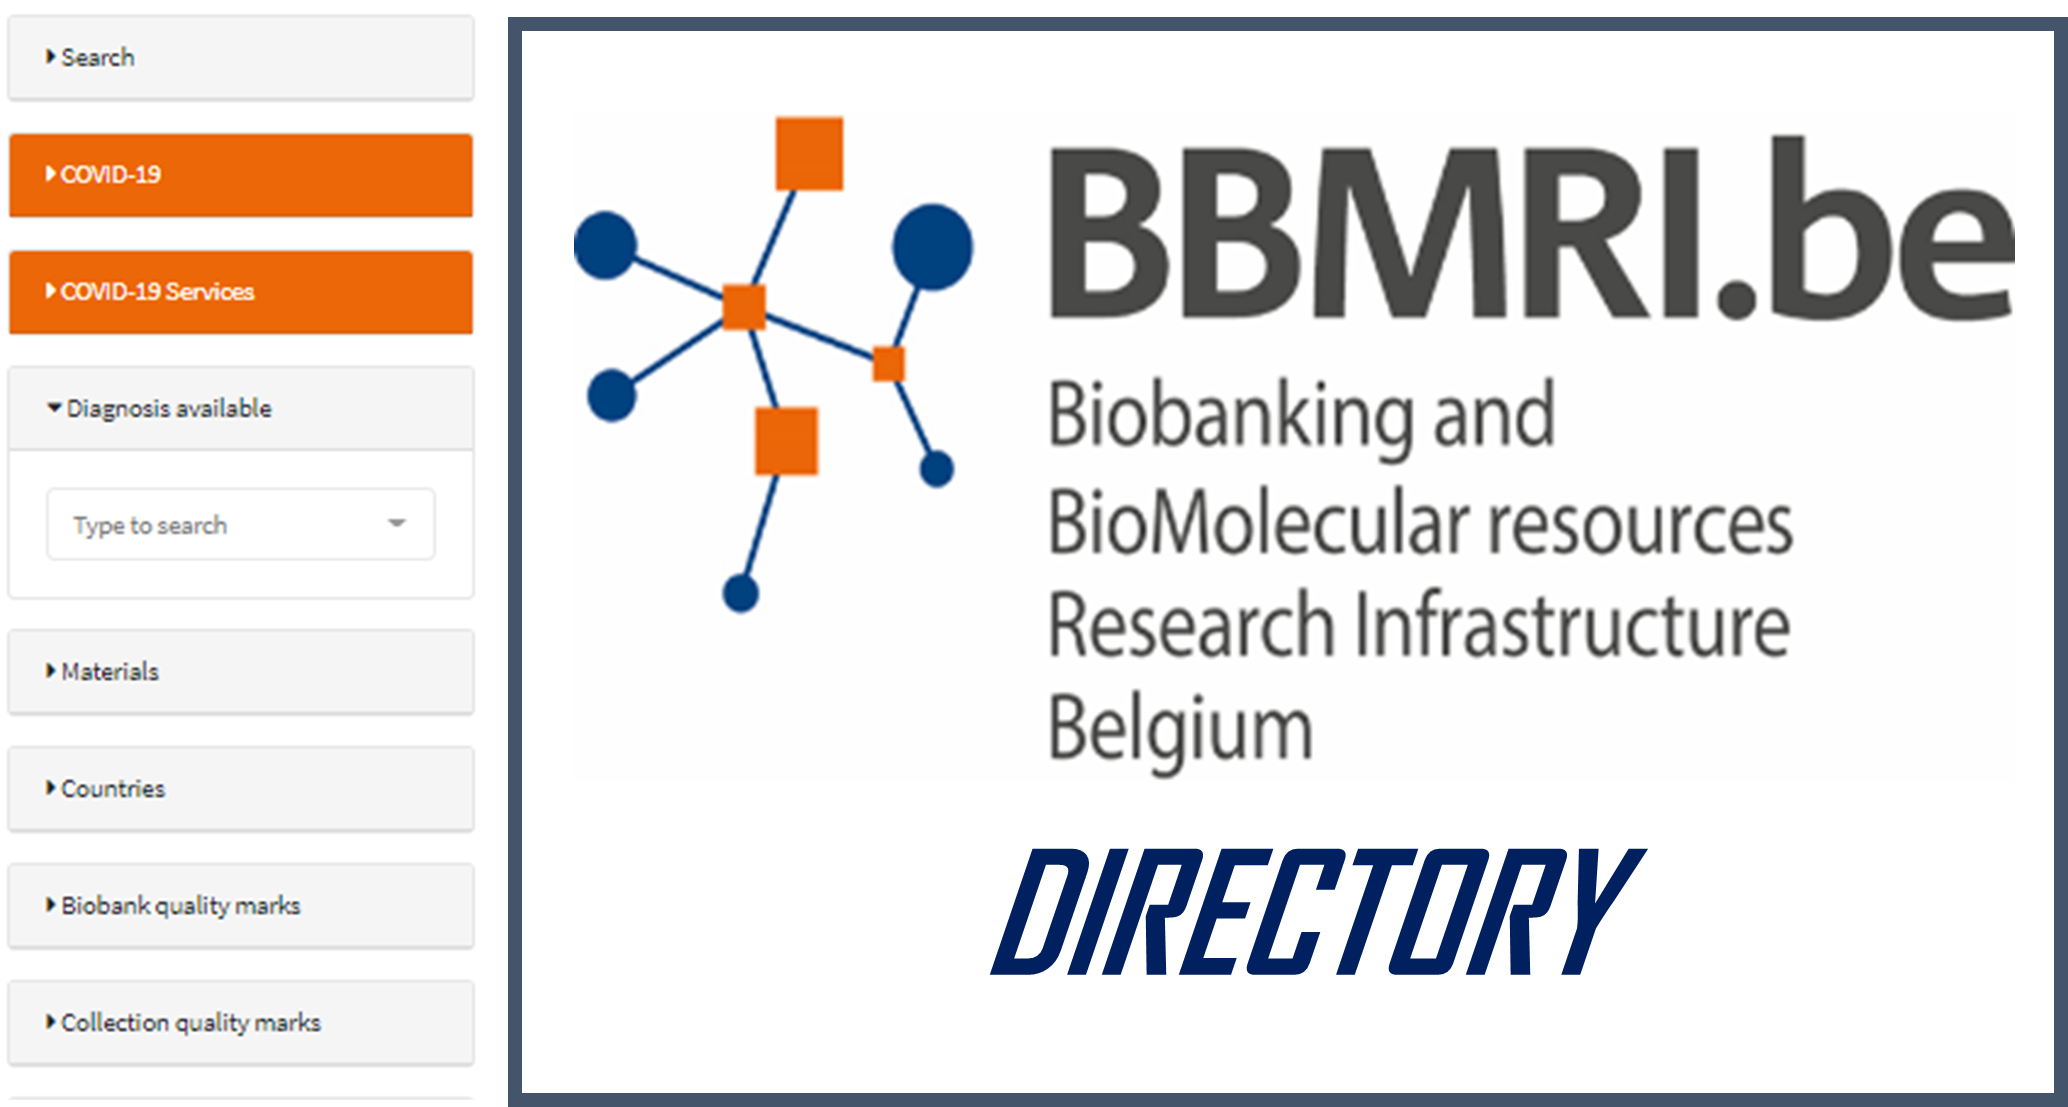 BBMRI.be Directory now available!